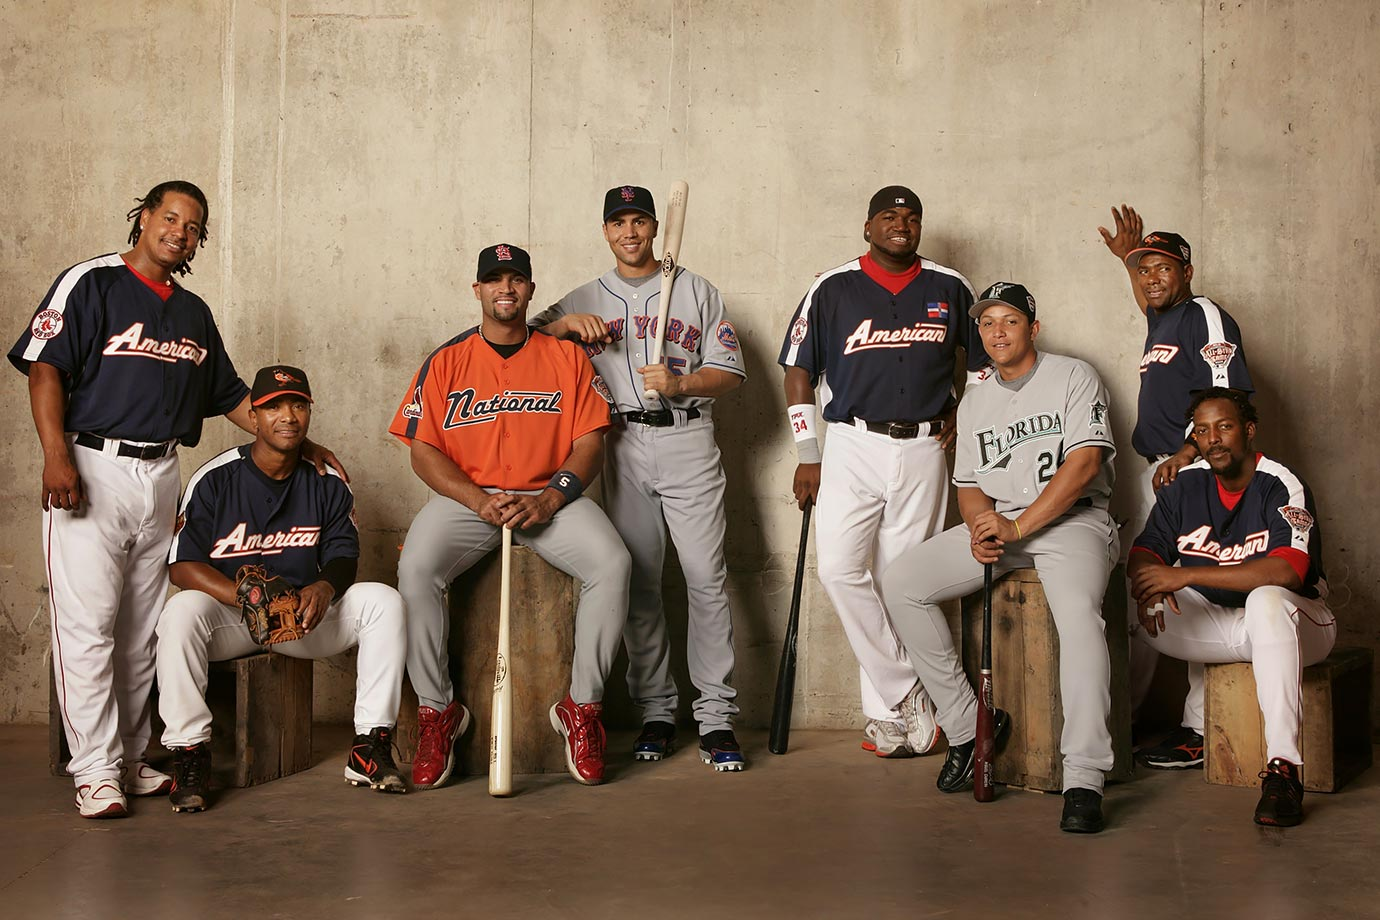 July 11, 2005 — Latin Kings of Baseball (All-Star Weekend)